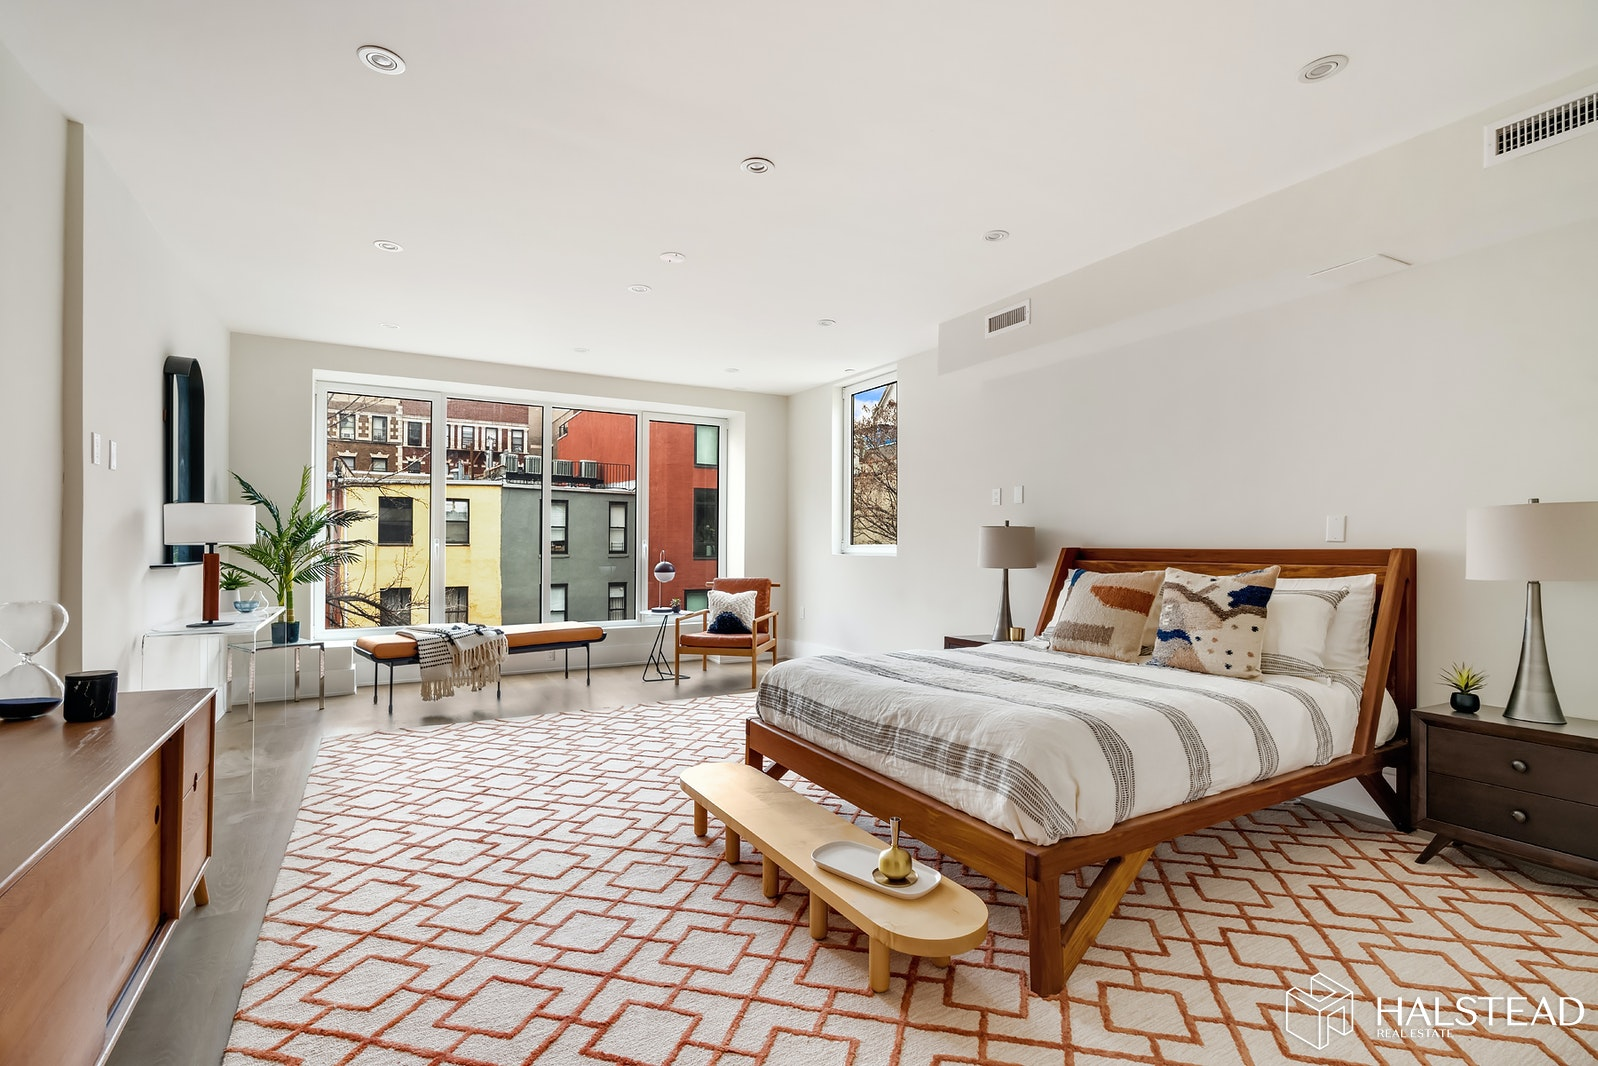 325 West 112th Street Thb, Upper Manhattan, NYC, 10026, $3,995,000, Property For Sale, Halstead Real Estate, Photo 9